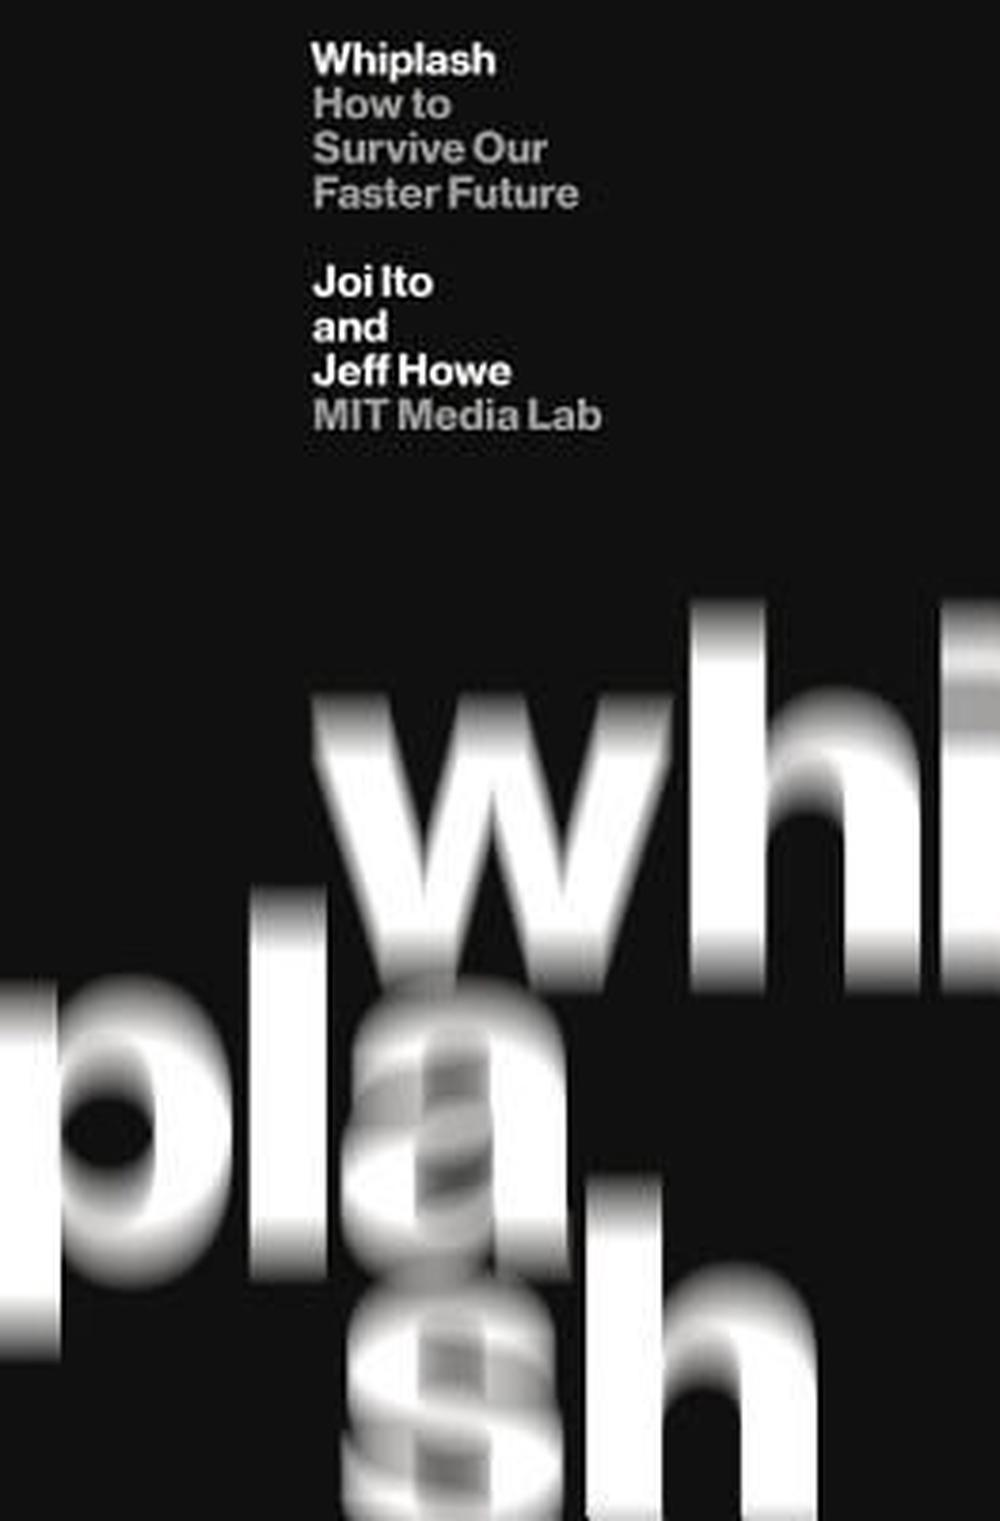 Whiplash by Joi Ito, ISBN: 9781455544592